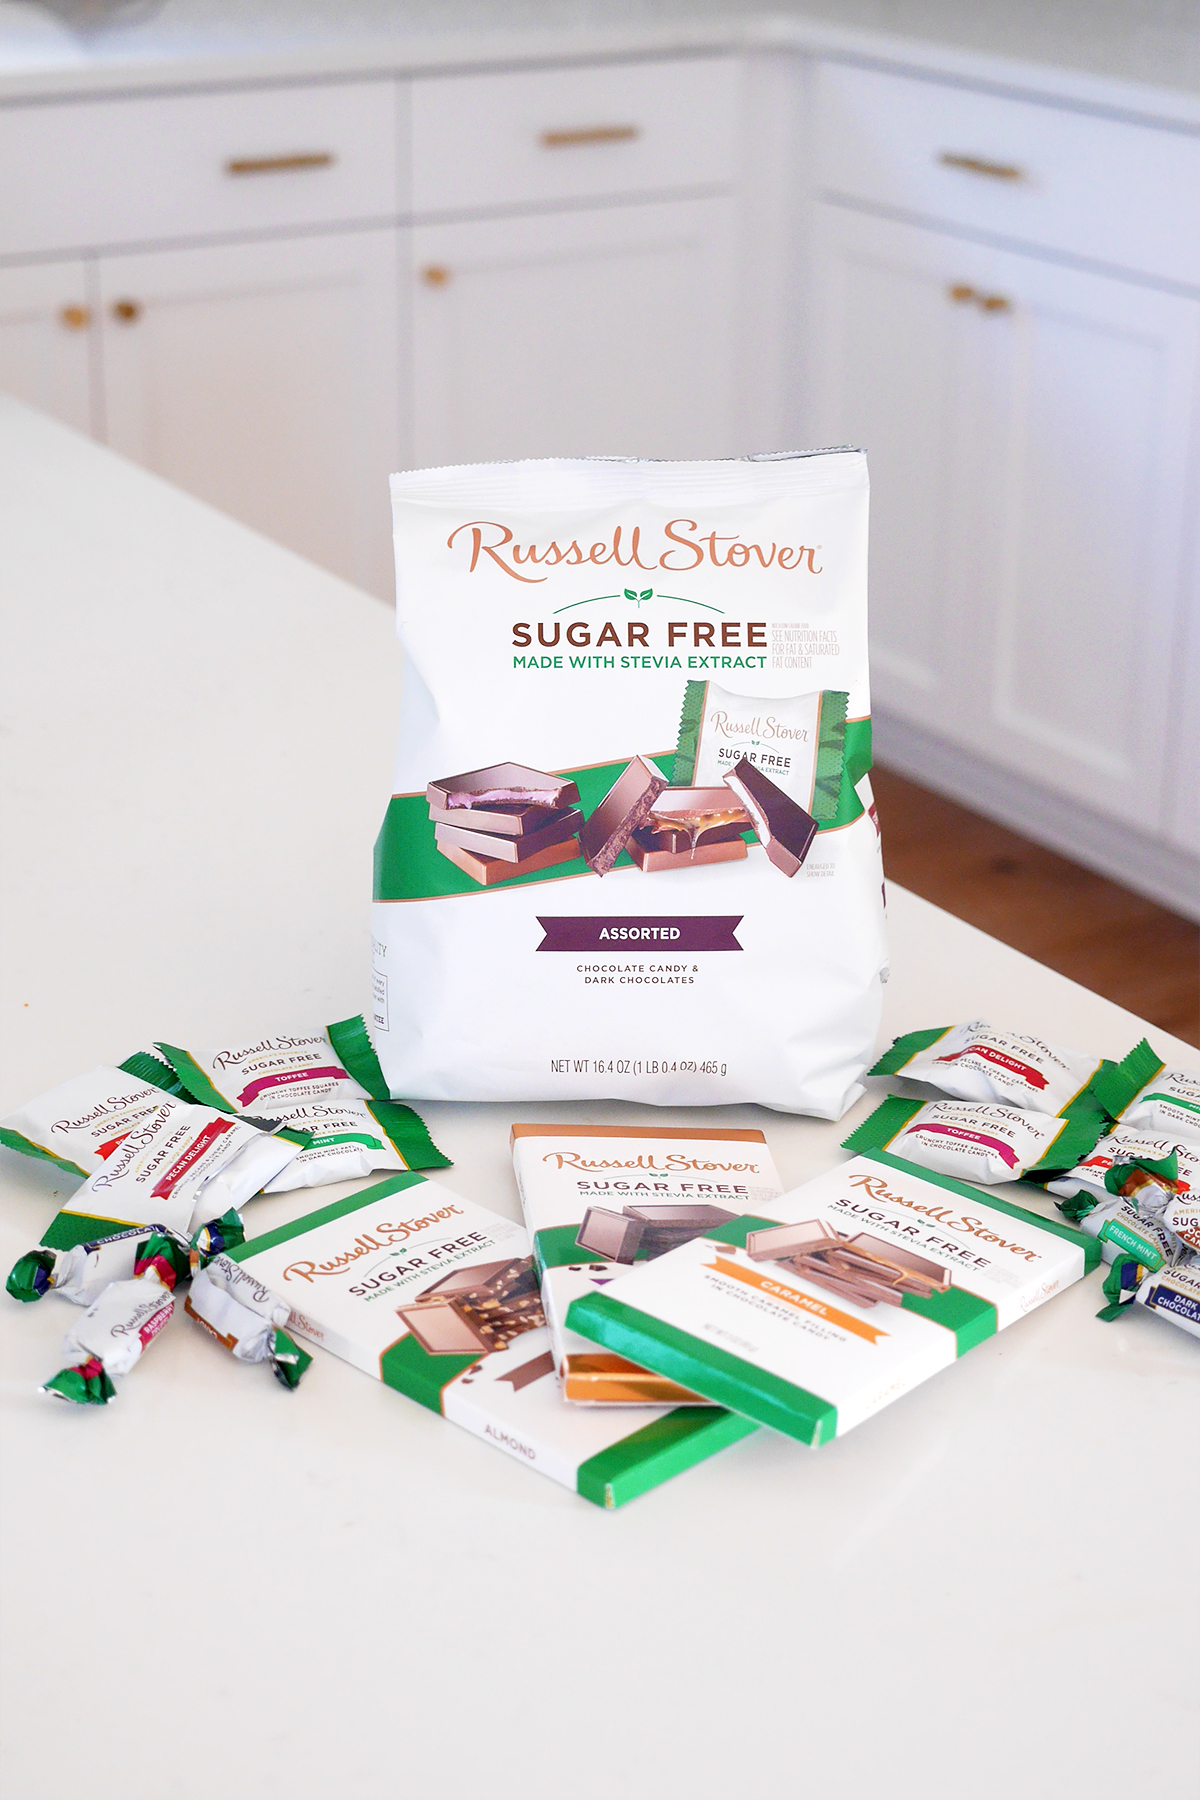 Russell Stover Sugar Free Chocolate